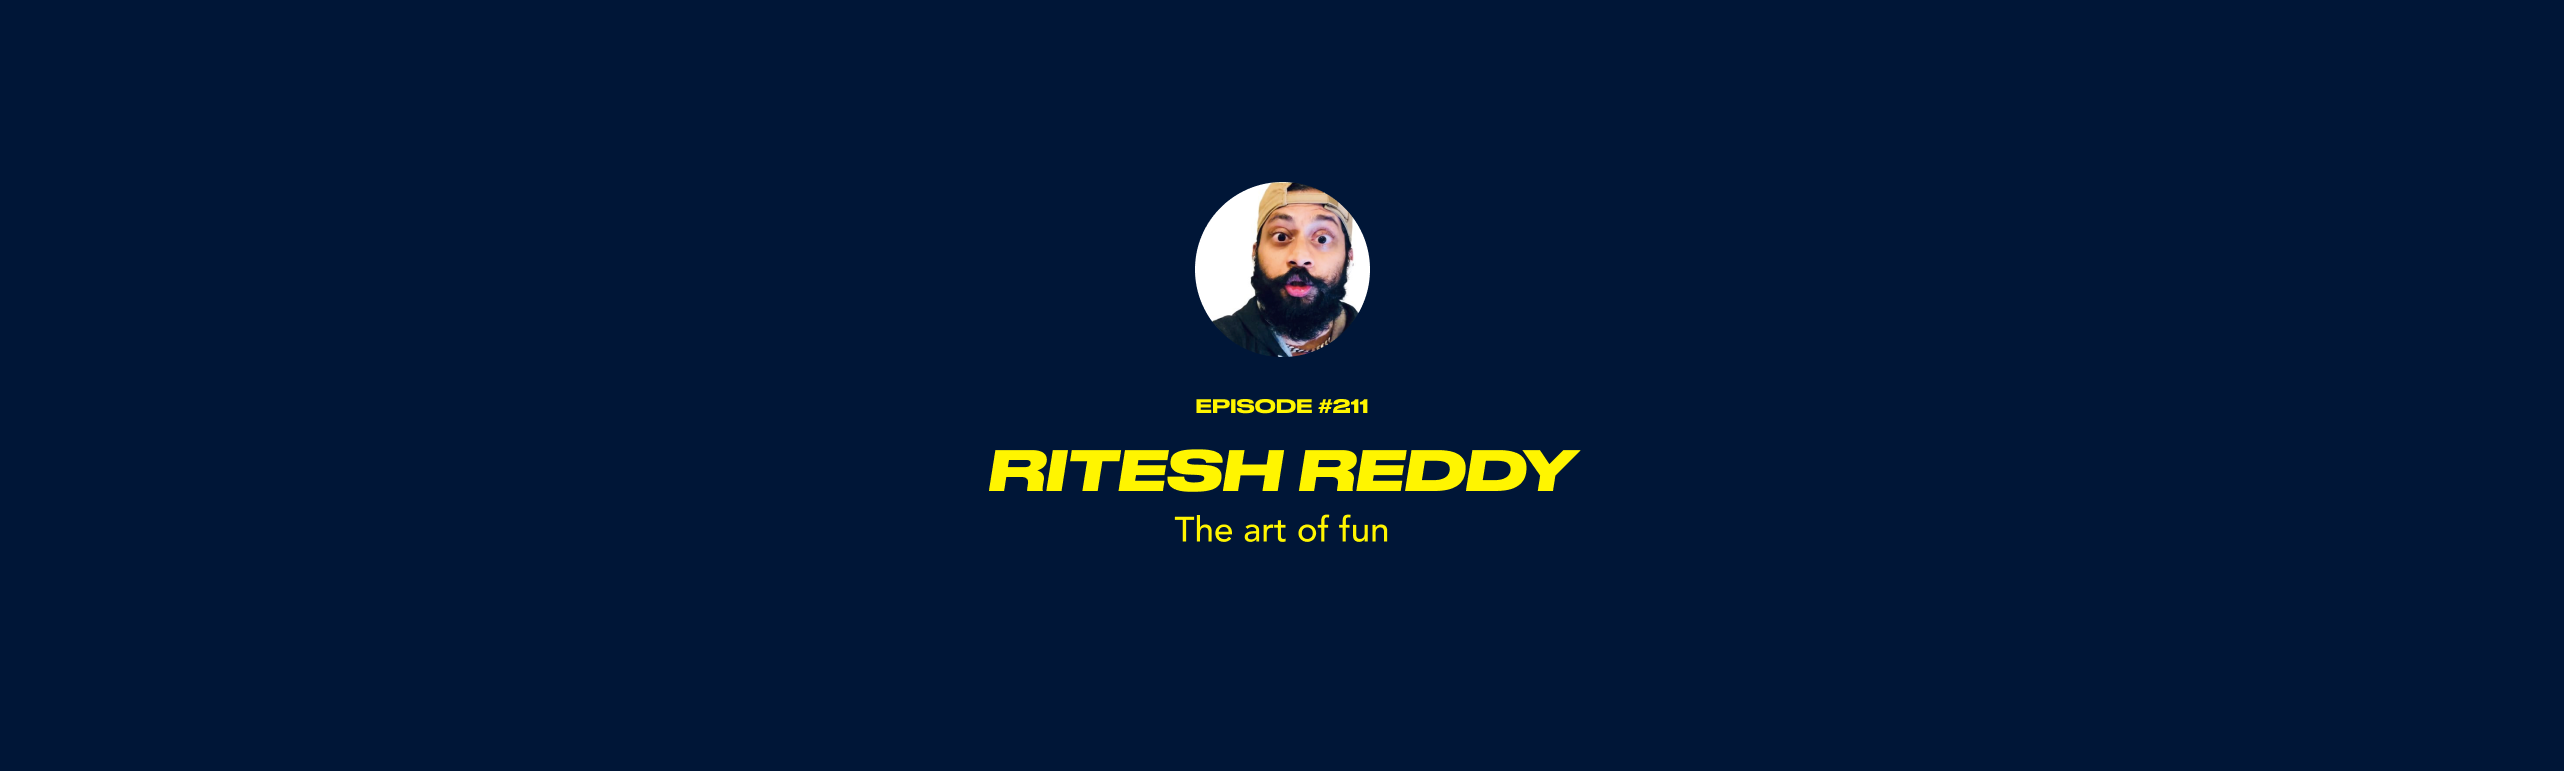 Ritesh Reddy - The art of fun